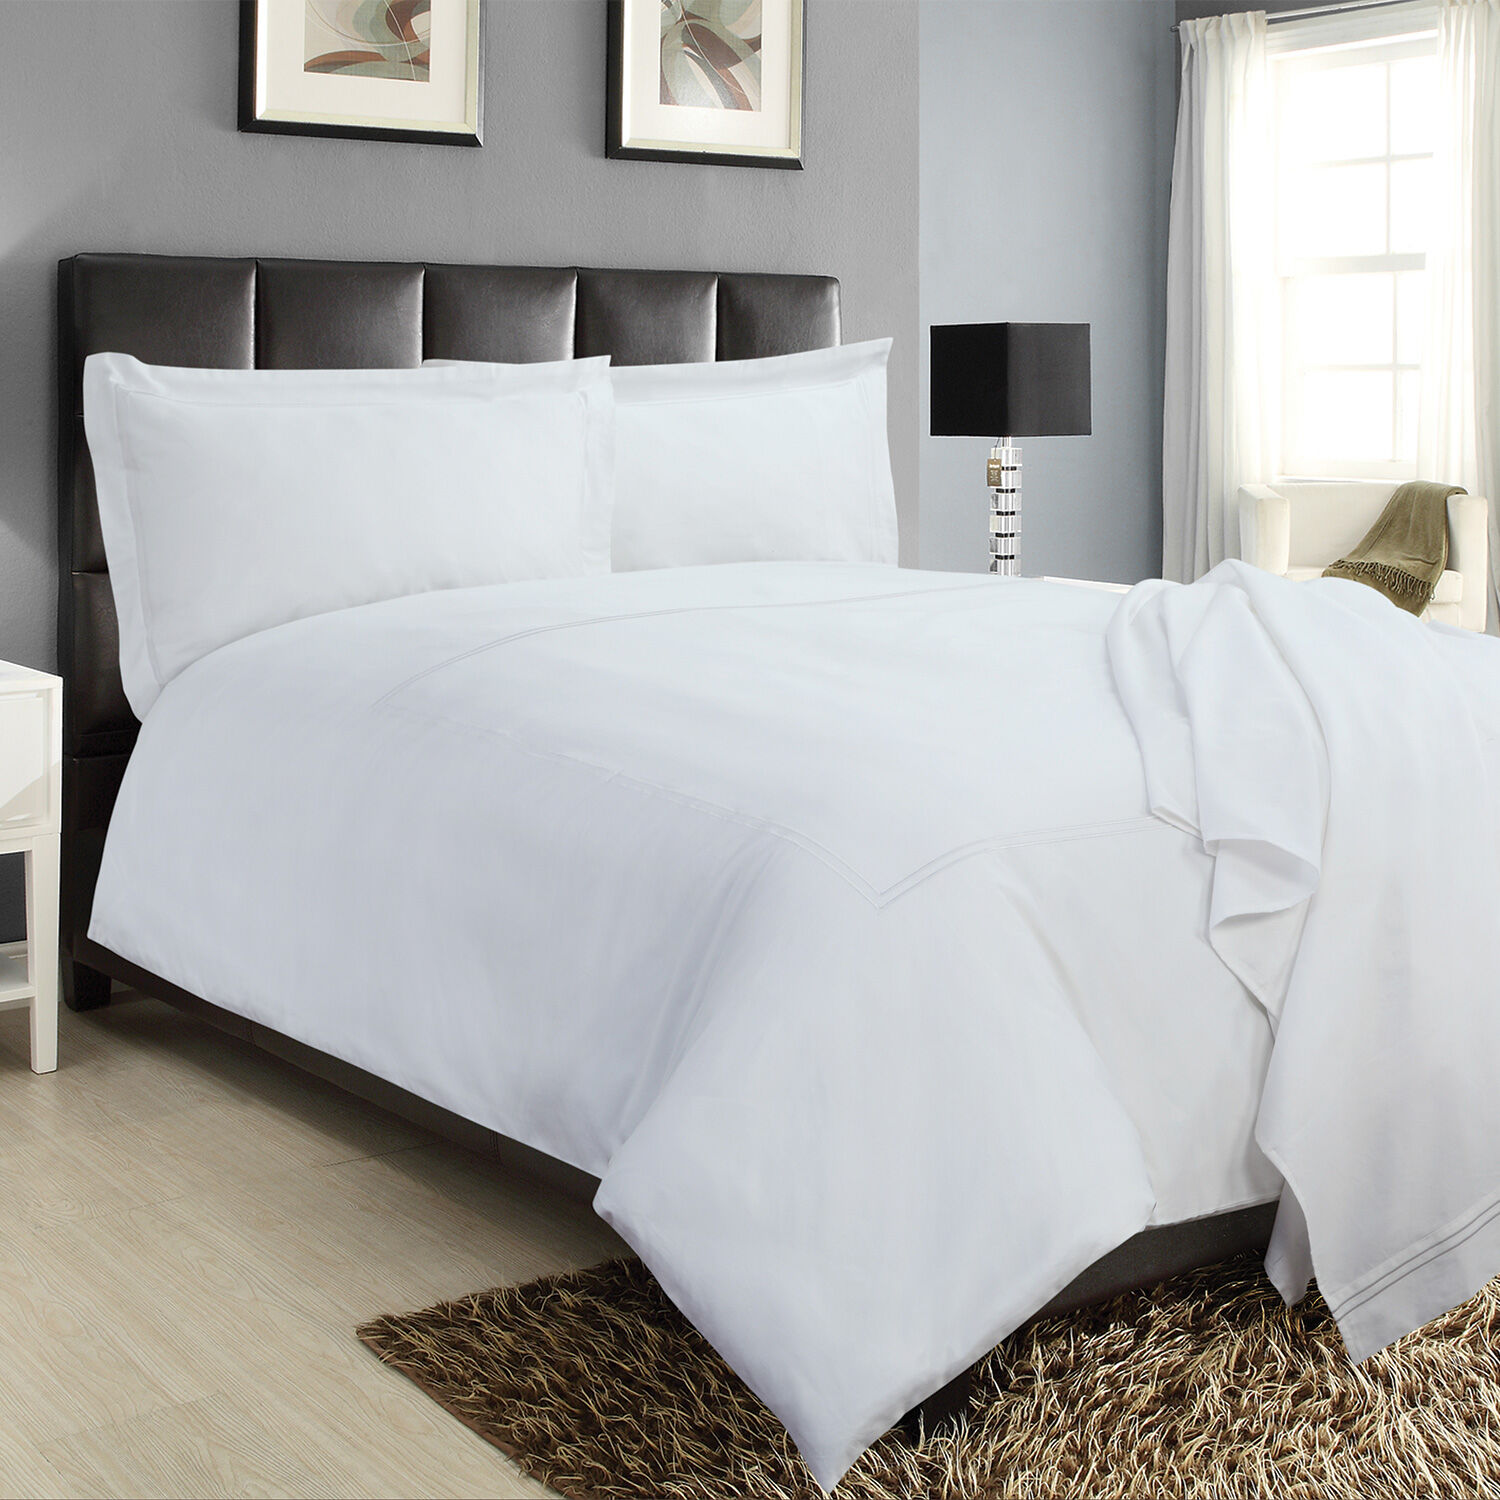 Double Stitch Duvet Cover